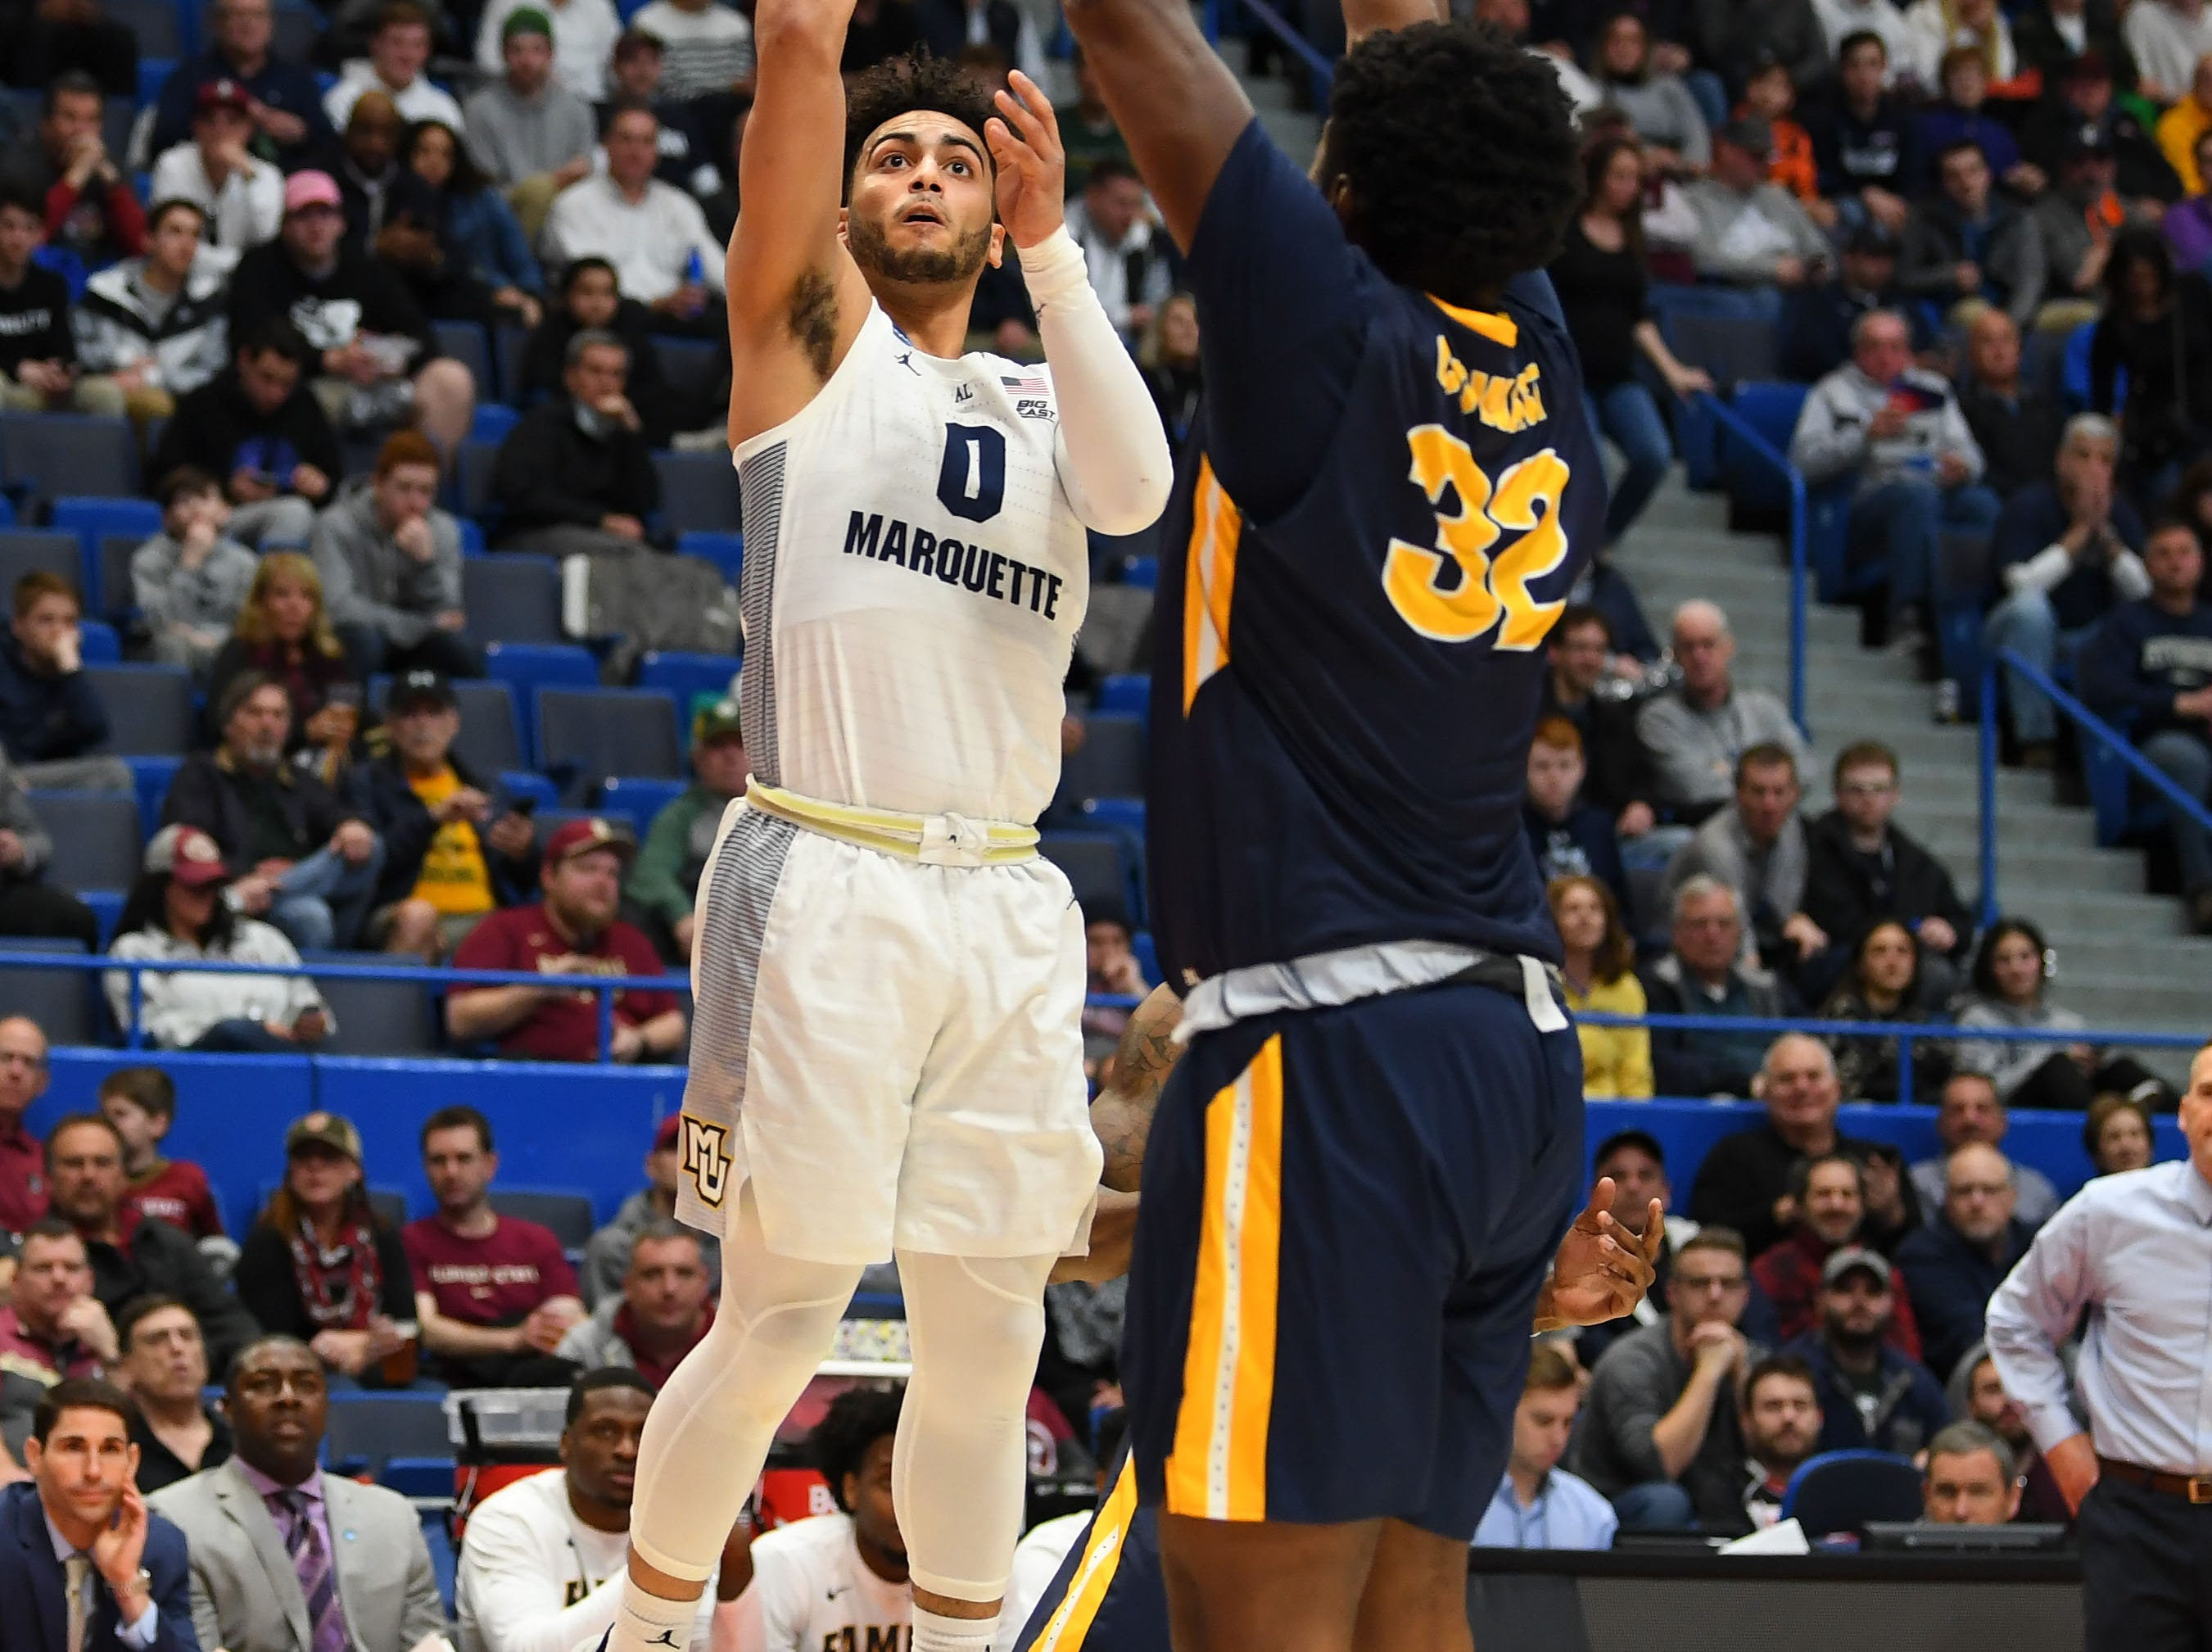 Mar 21, 2019; Hartford, CT, USA; Marquette Golden Eagles guard Markus Howard (0) attempts a shot past Murray State Racers forward Darnell Cowart (32) during the first half in the first round of the 2019 NCAA Tournament at XL Center. Mandatory Credit: Robert Deutsch-USA TODAY Sports